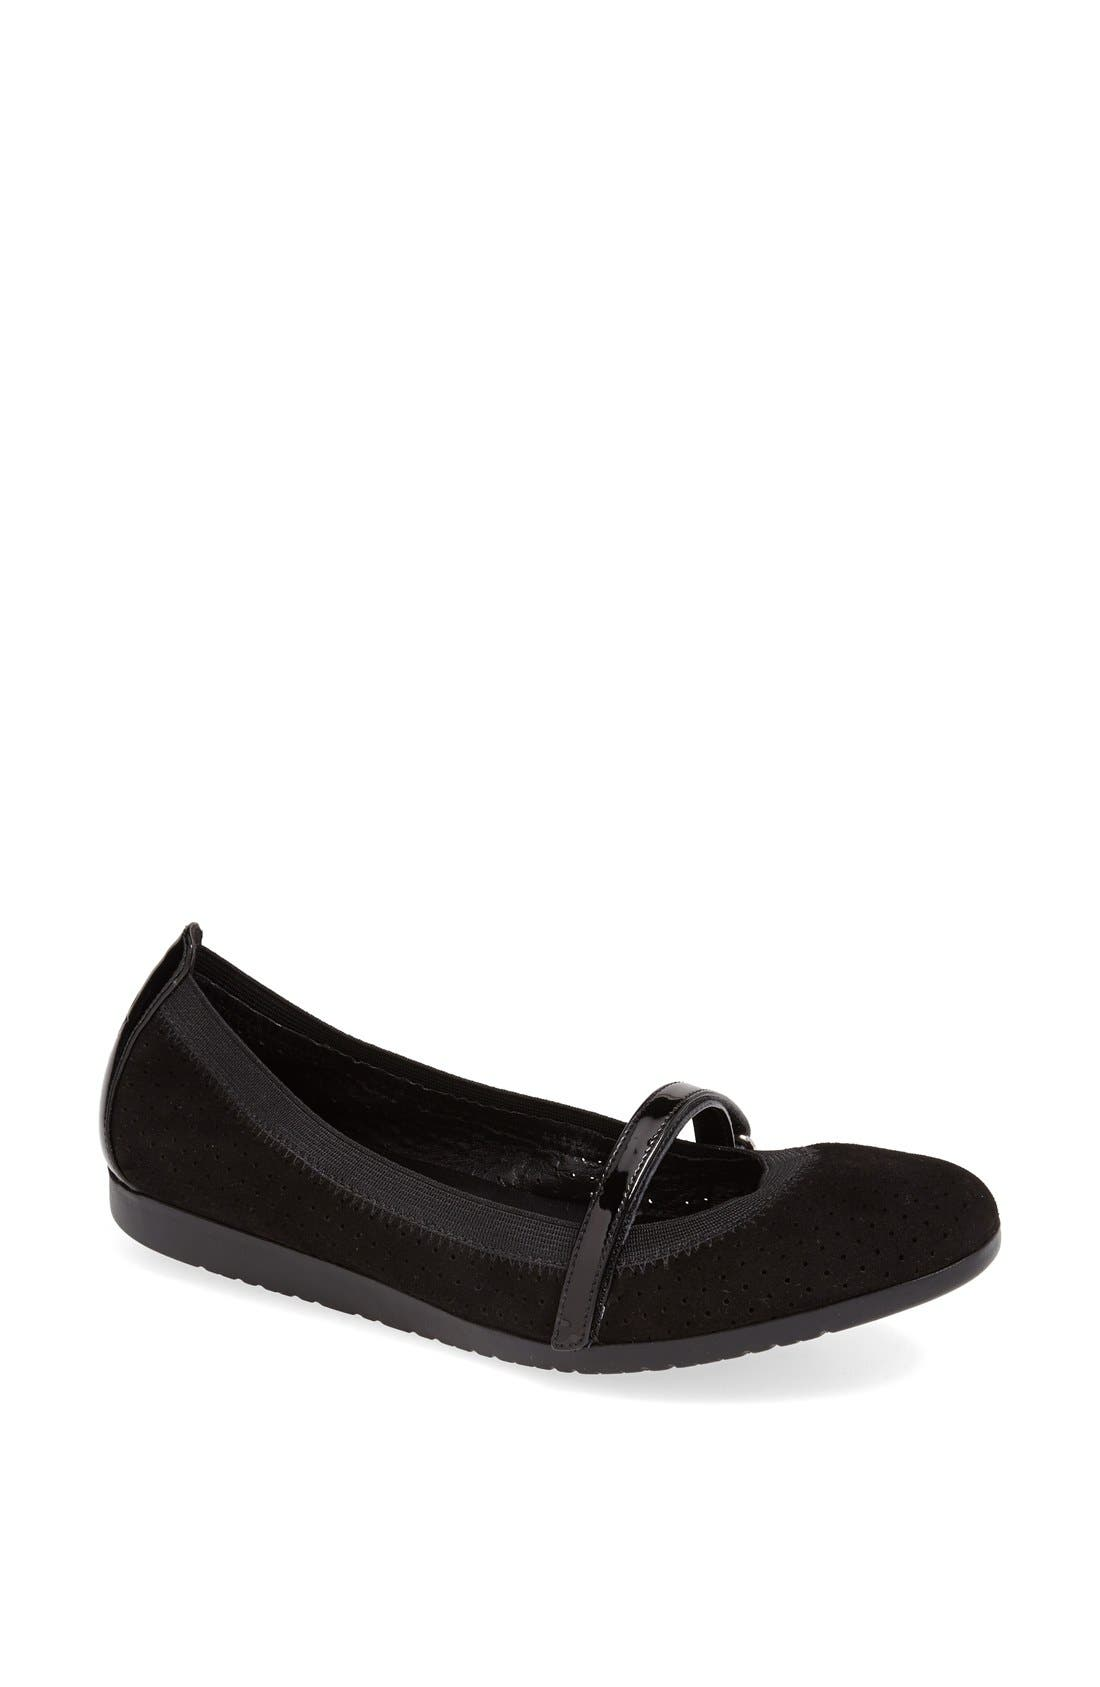 Main Image - Cole Haan 'Gilmore' Mary Jane Ballet Flat